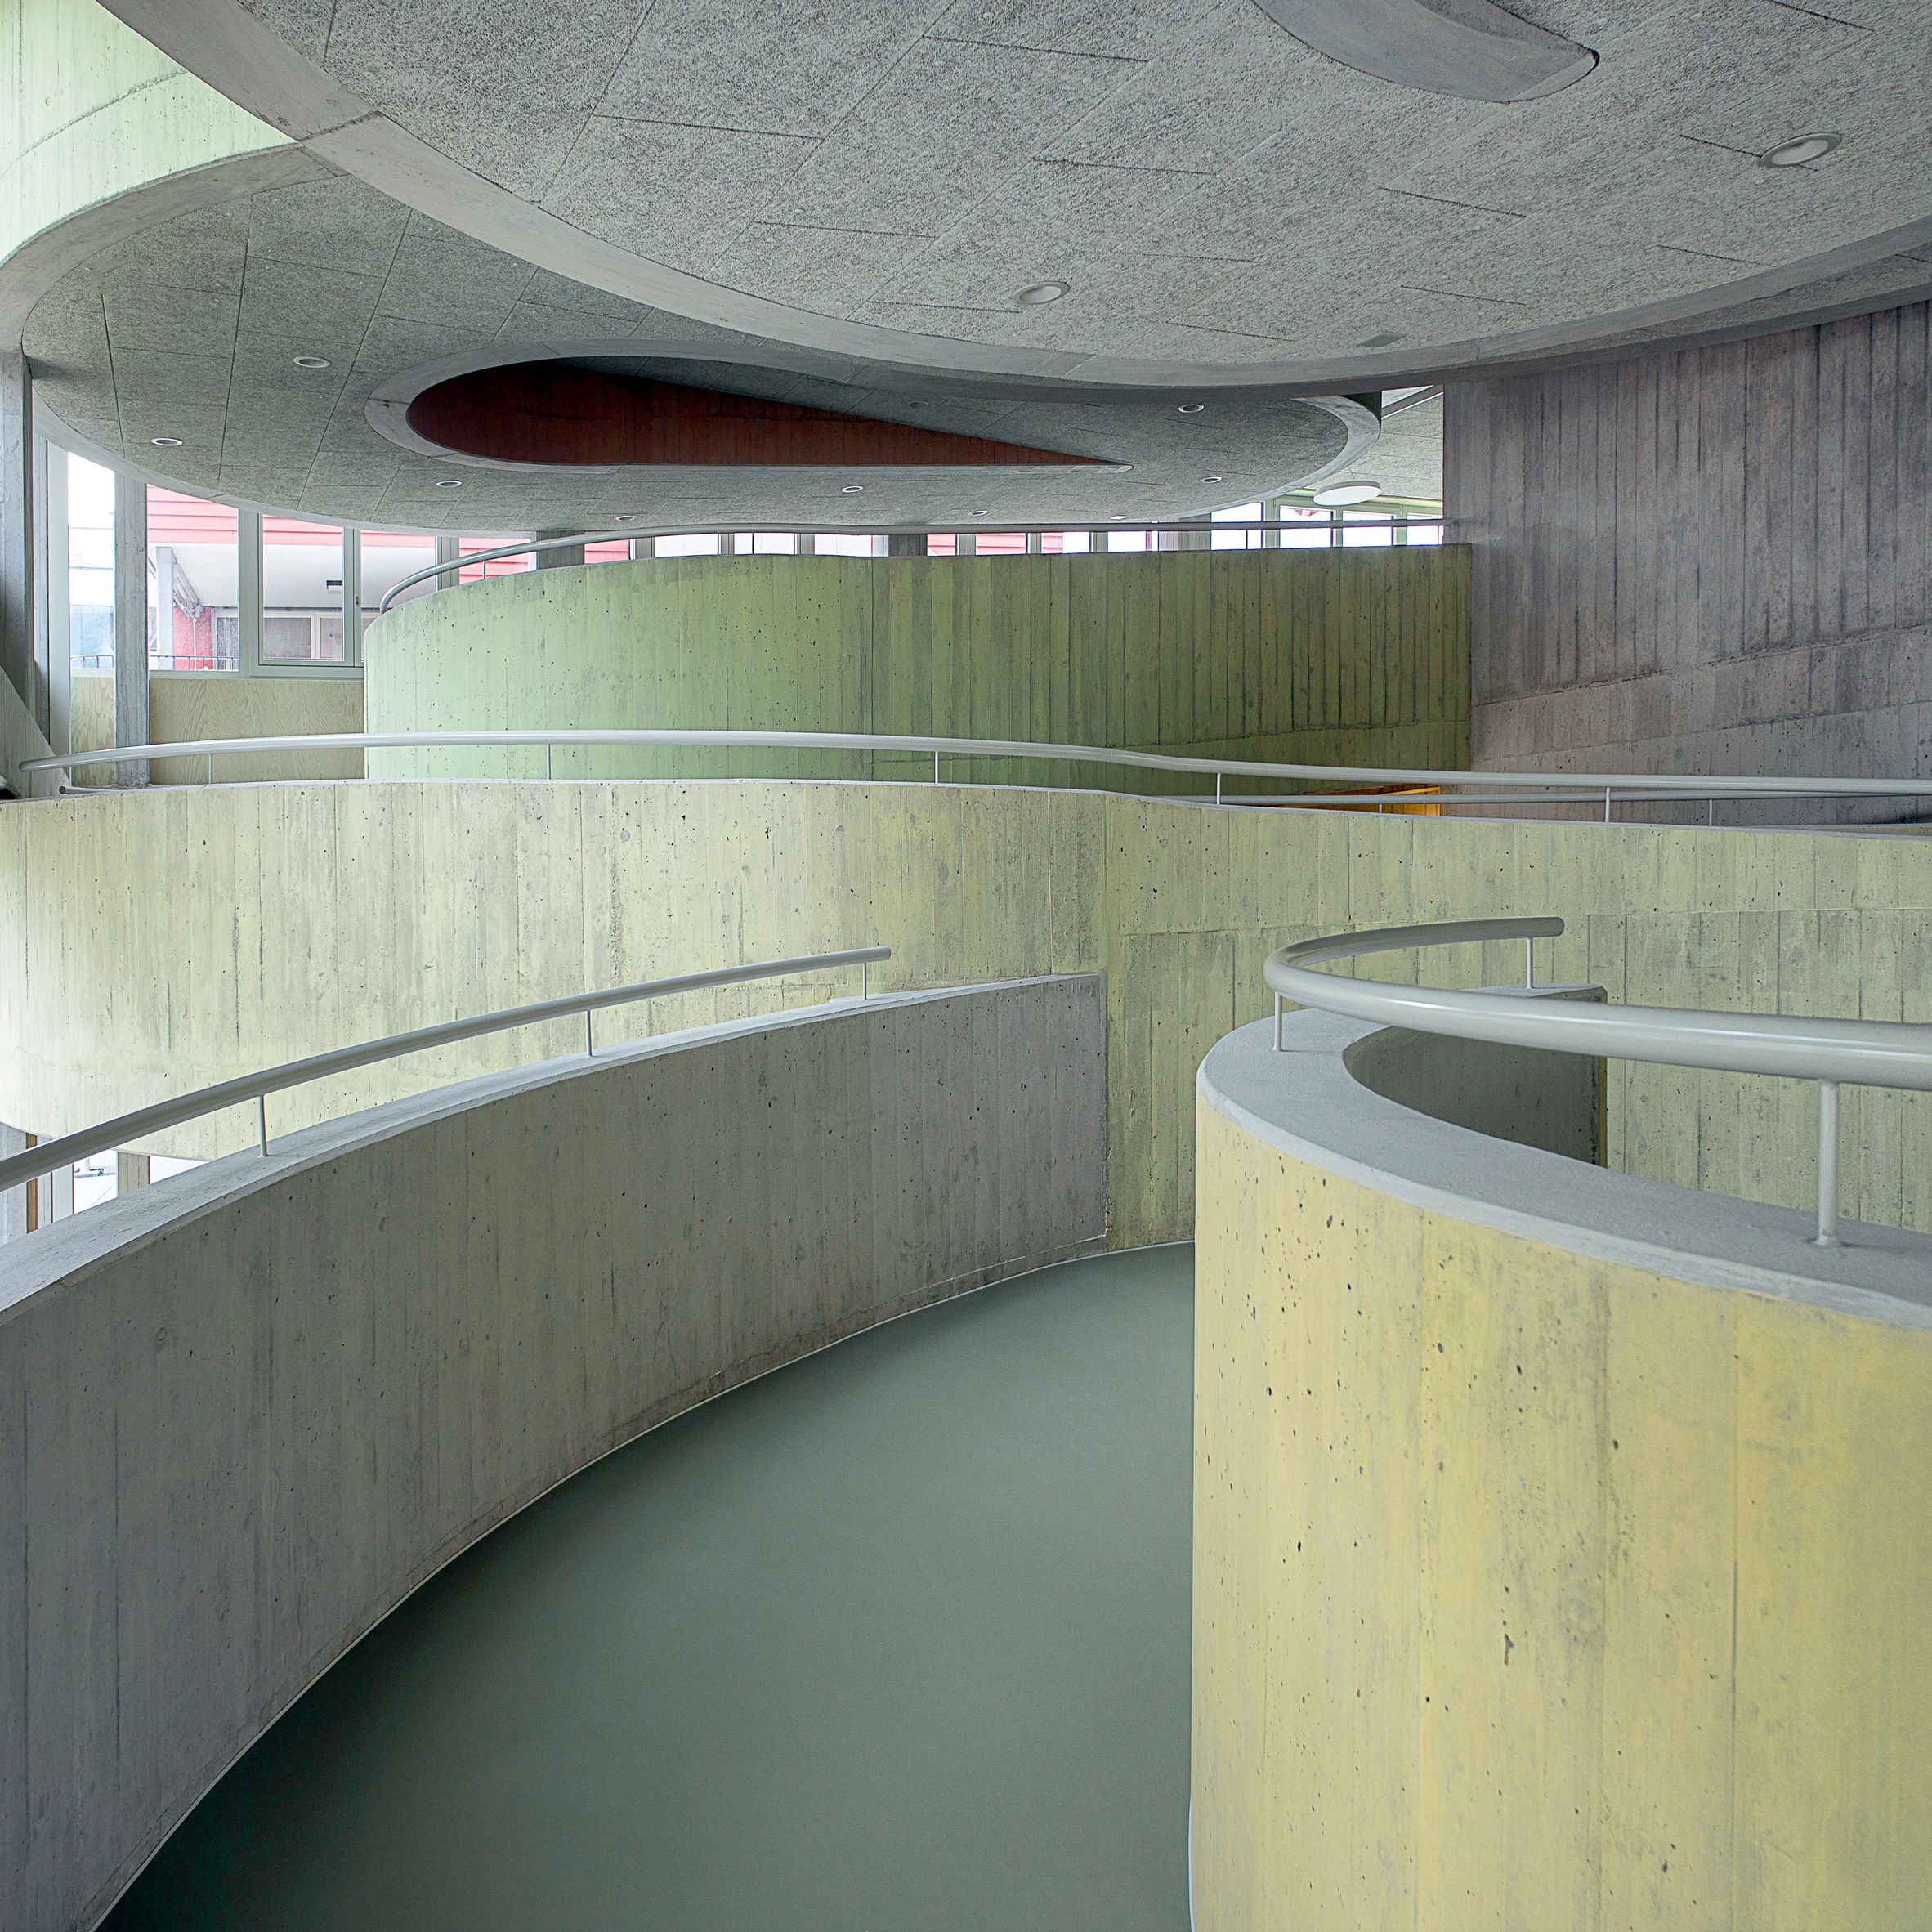 This extension to a day-care centre for disabled adults in the Swiss town of Stans has been kitted out with muted red awnings and spiralling pastel-tinged walkways. Local studio Architekten CM was tasked with designing the building for the Weidli Stans Foundation, which provides accommodation and learning support for adults with multiple physical and mental